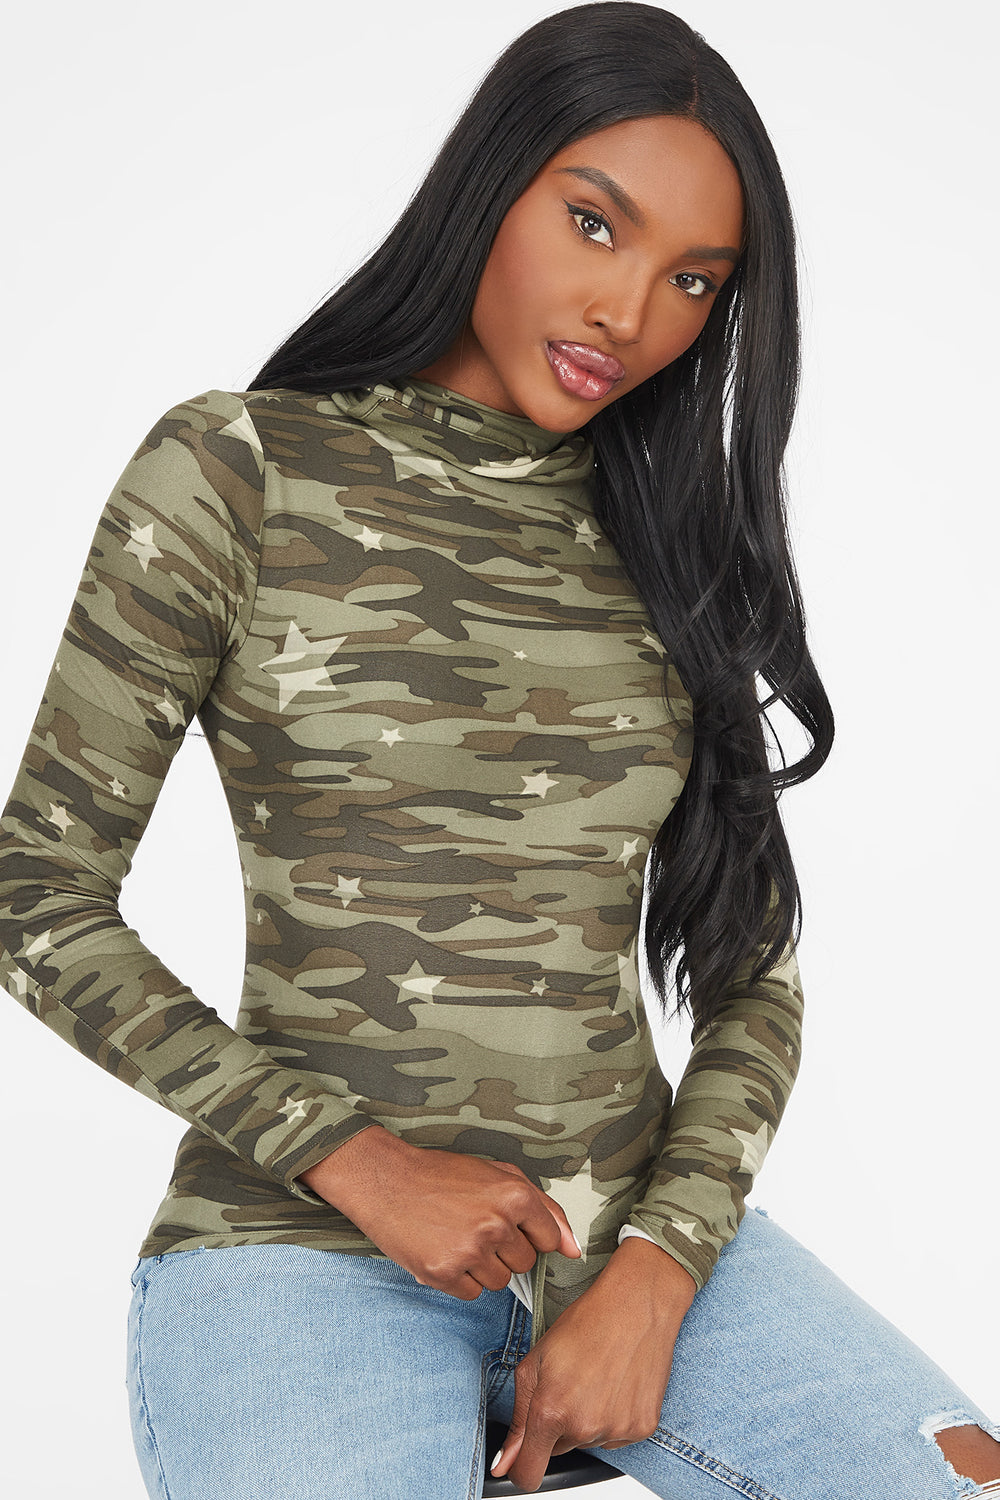 Camo Printed Turtleneck Mask Long Sleeve Top Camouflage